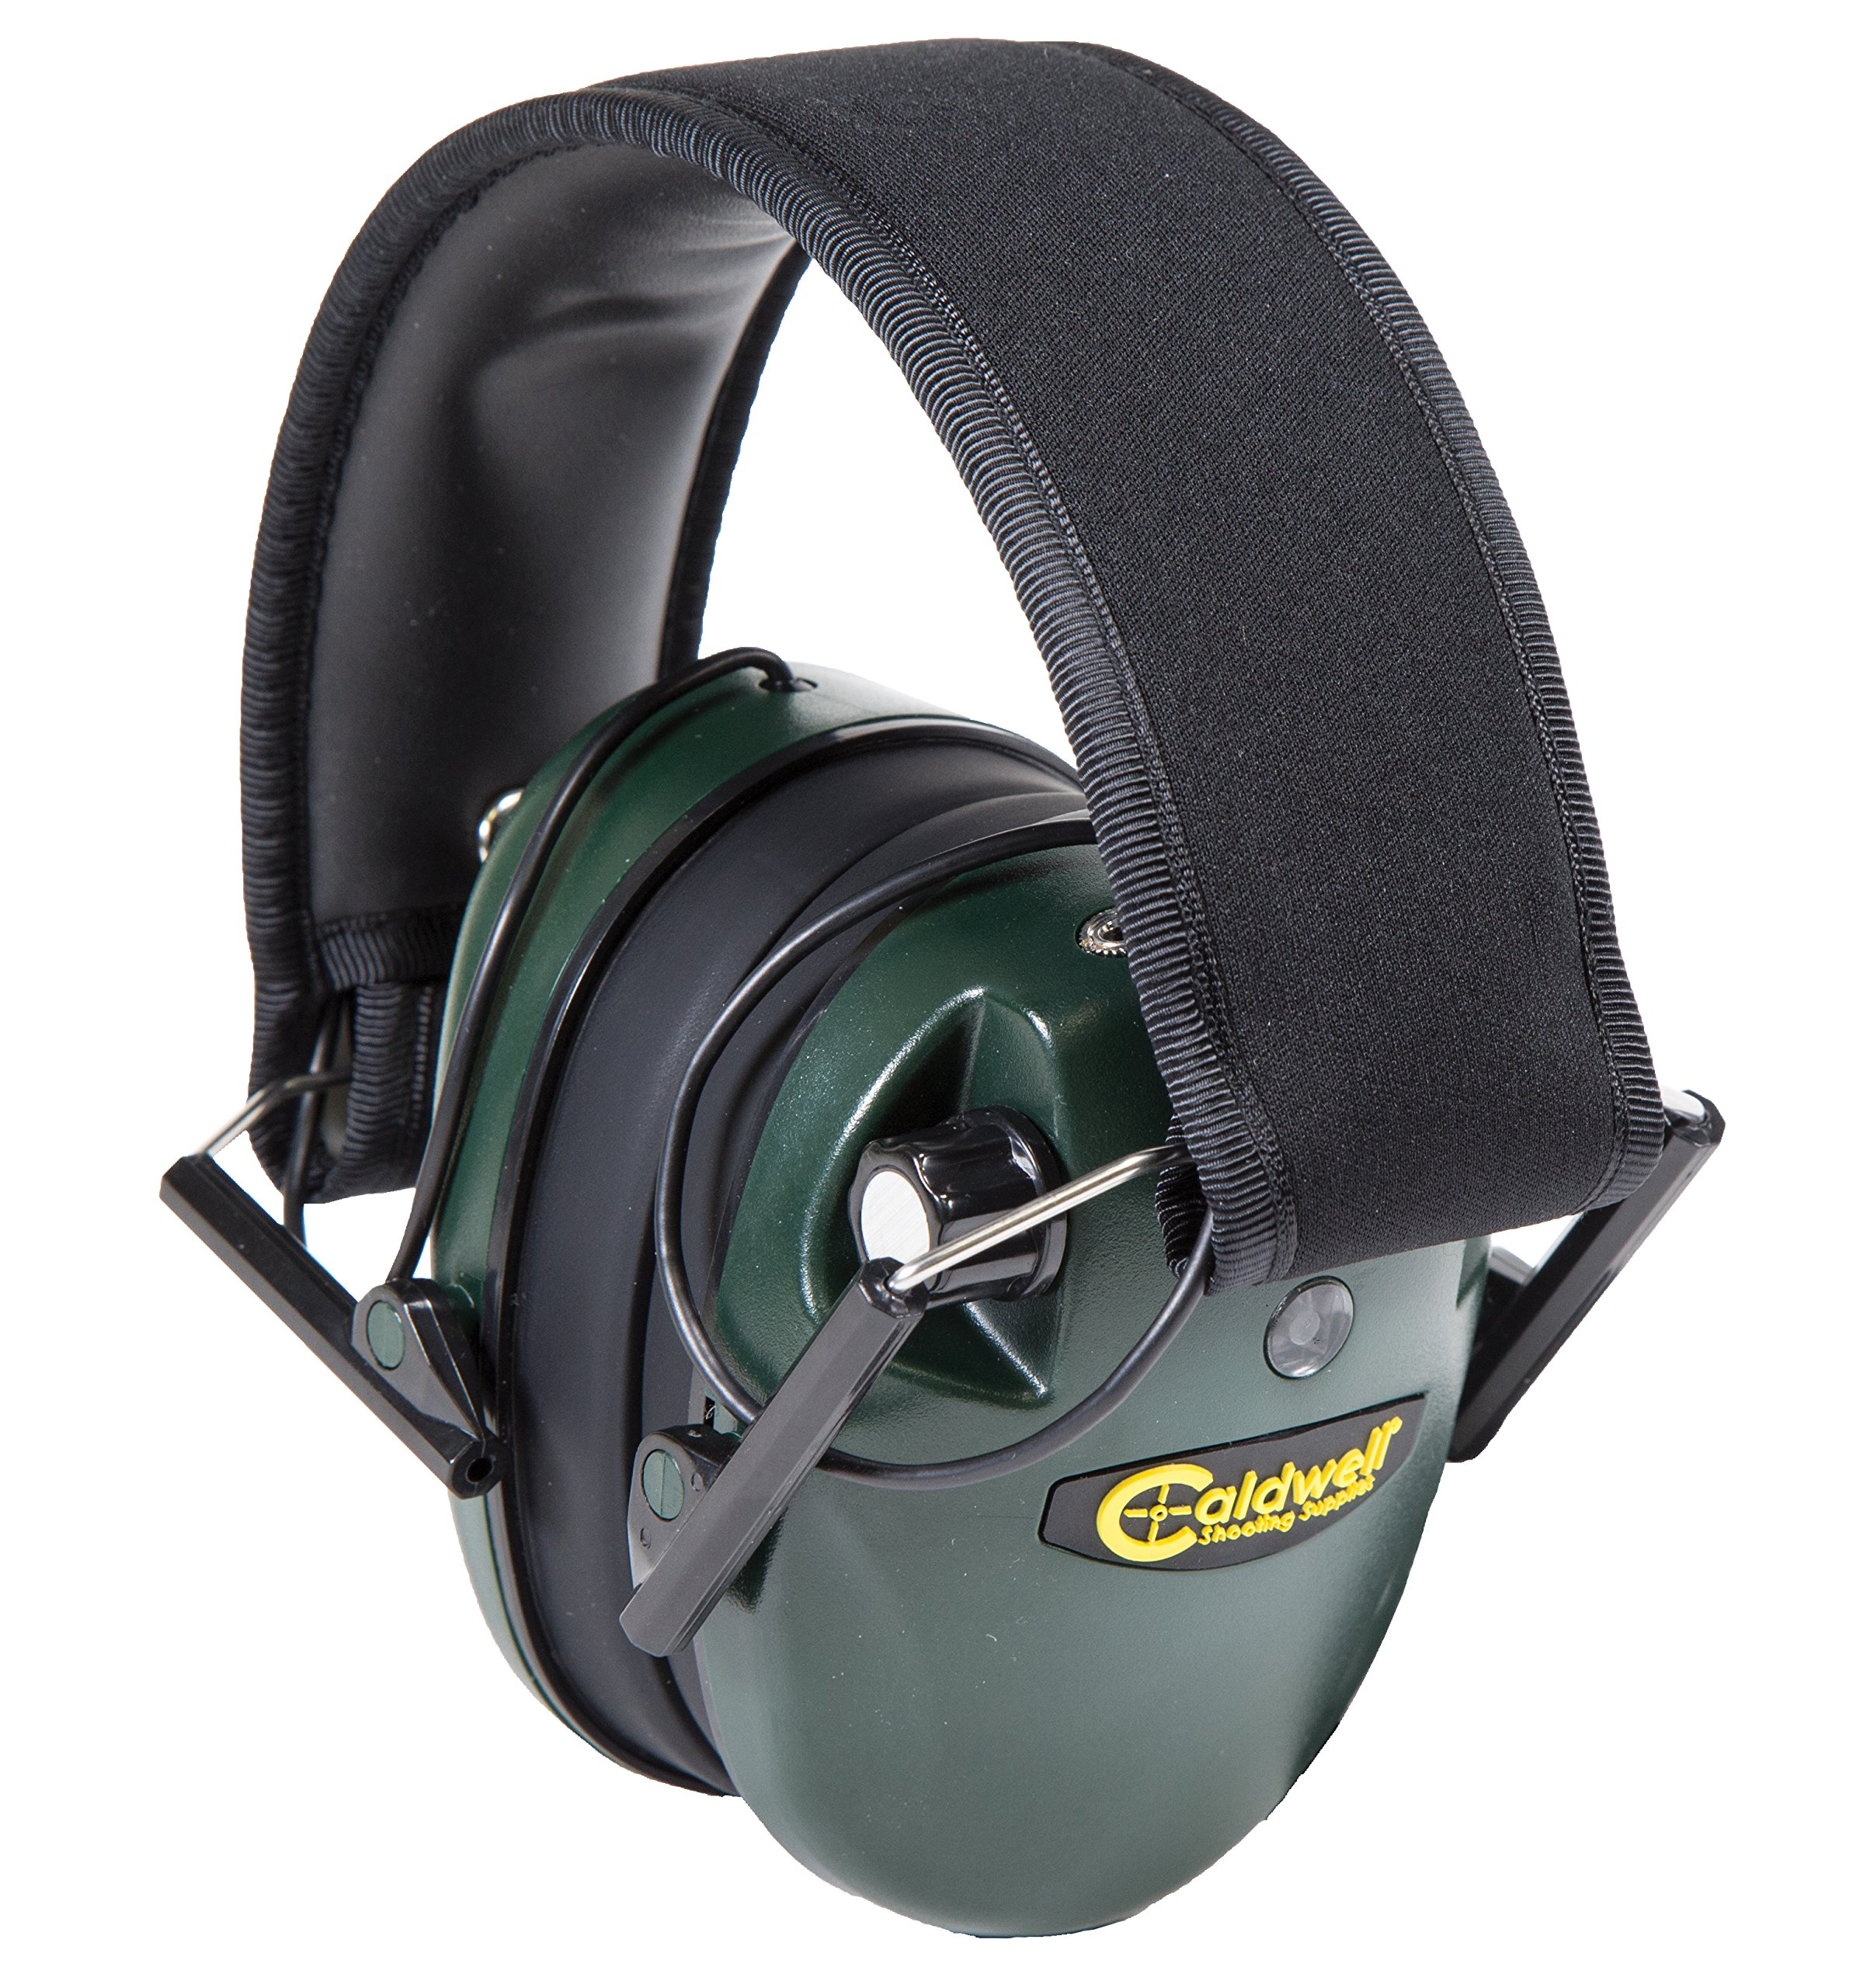 Caldwell E-Max Low Profile Electronic 23 NRR Hearing Protection with Sound Amplification and Adjustable Earmuffs for Shooting, Hunting and Range, Green by Caldwell